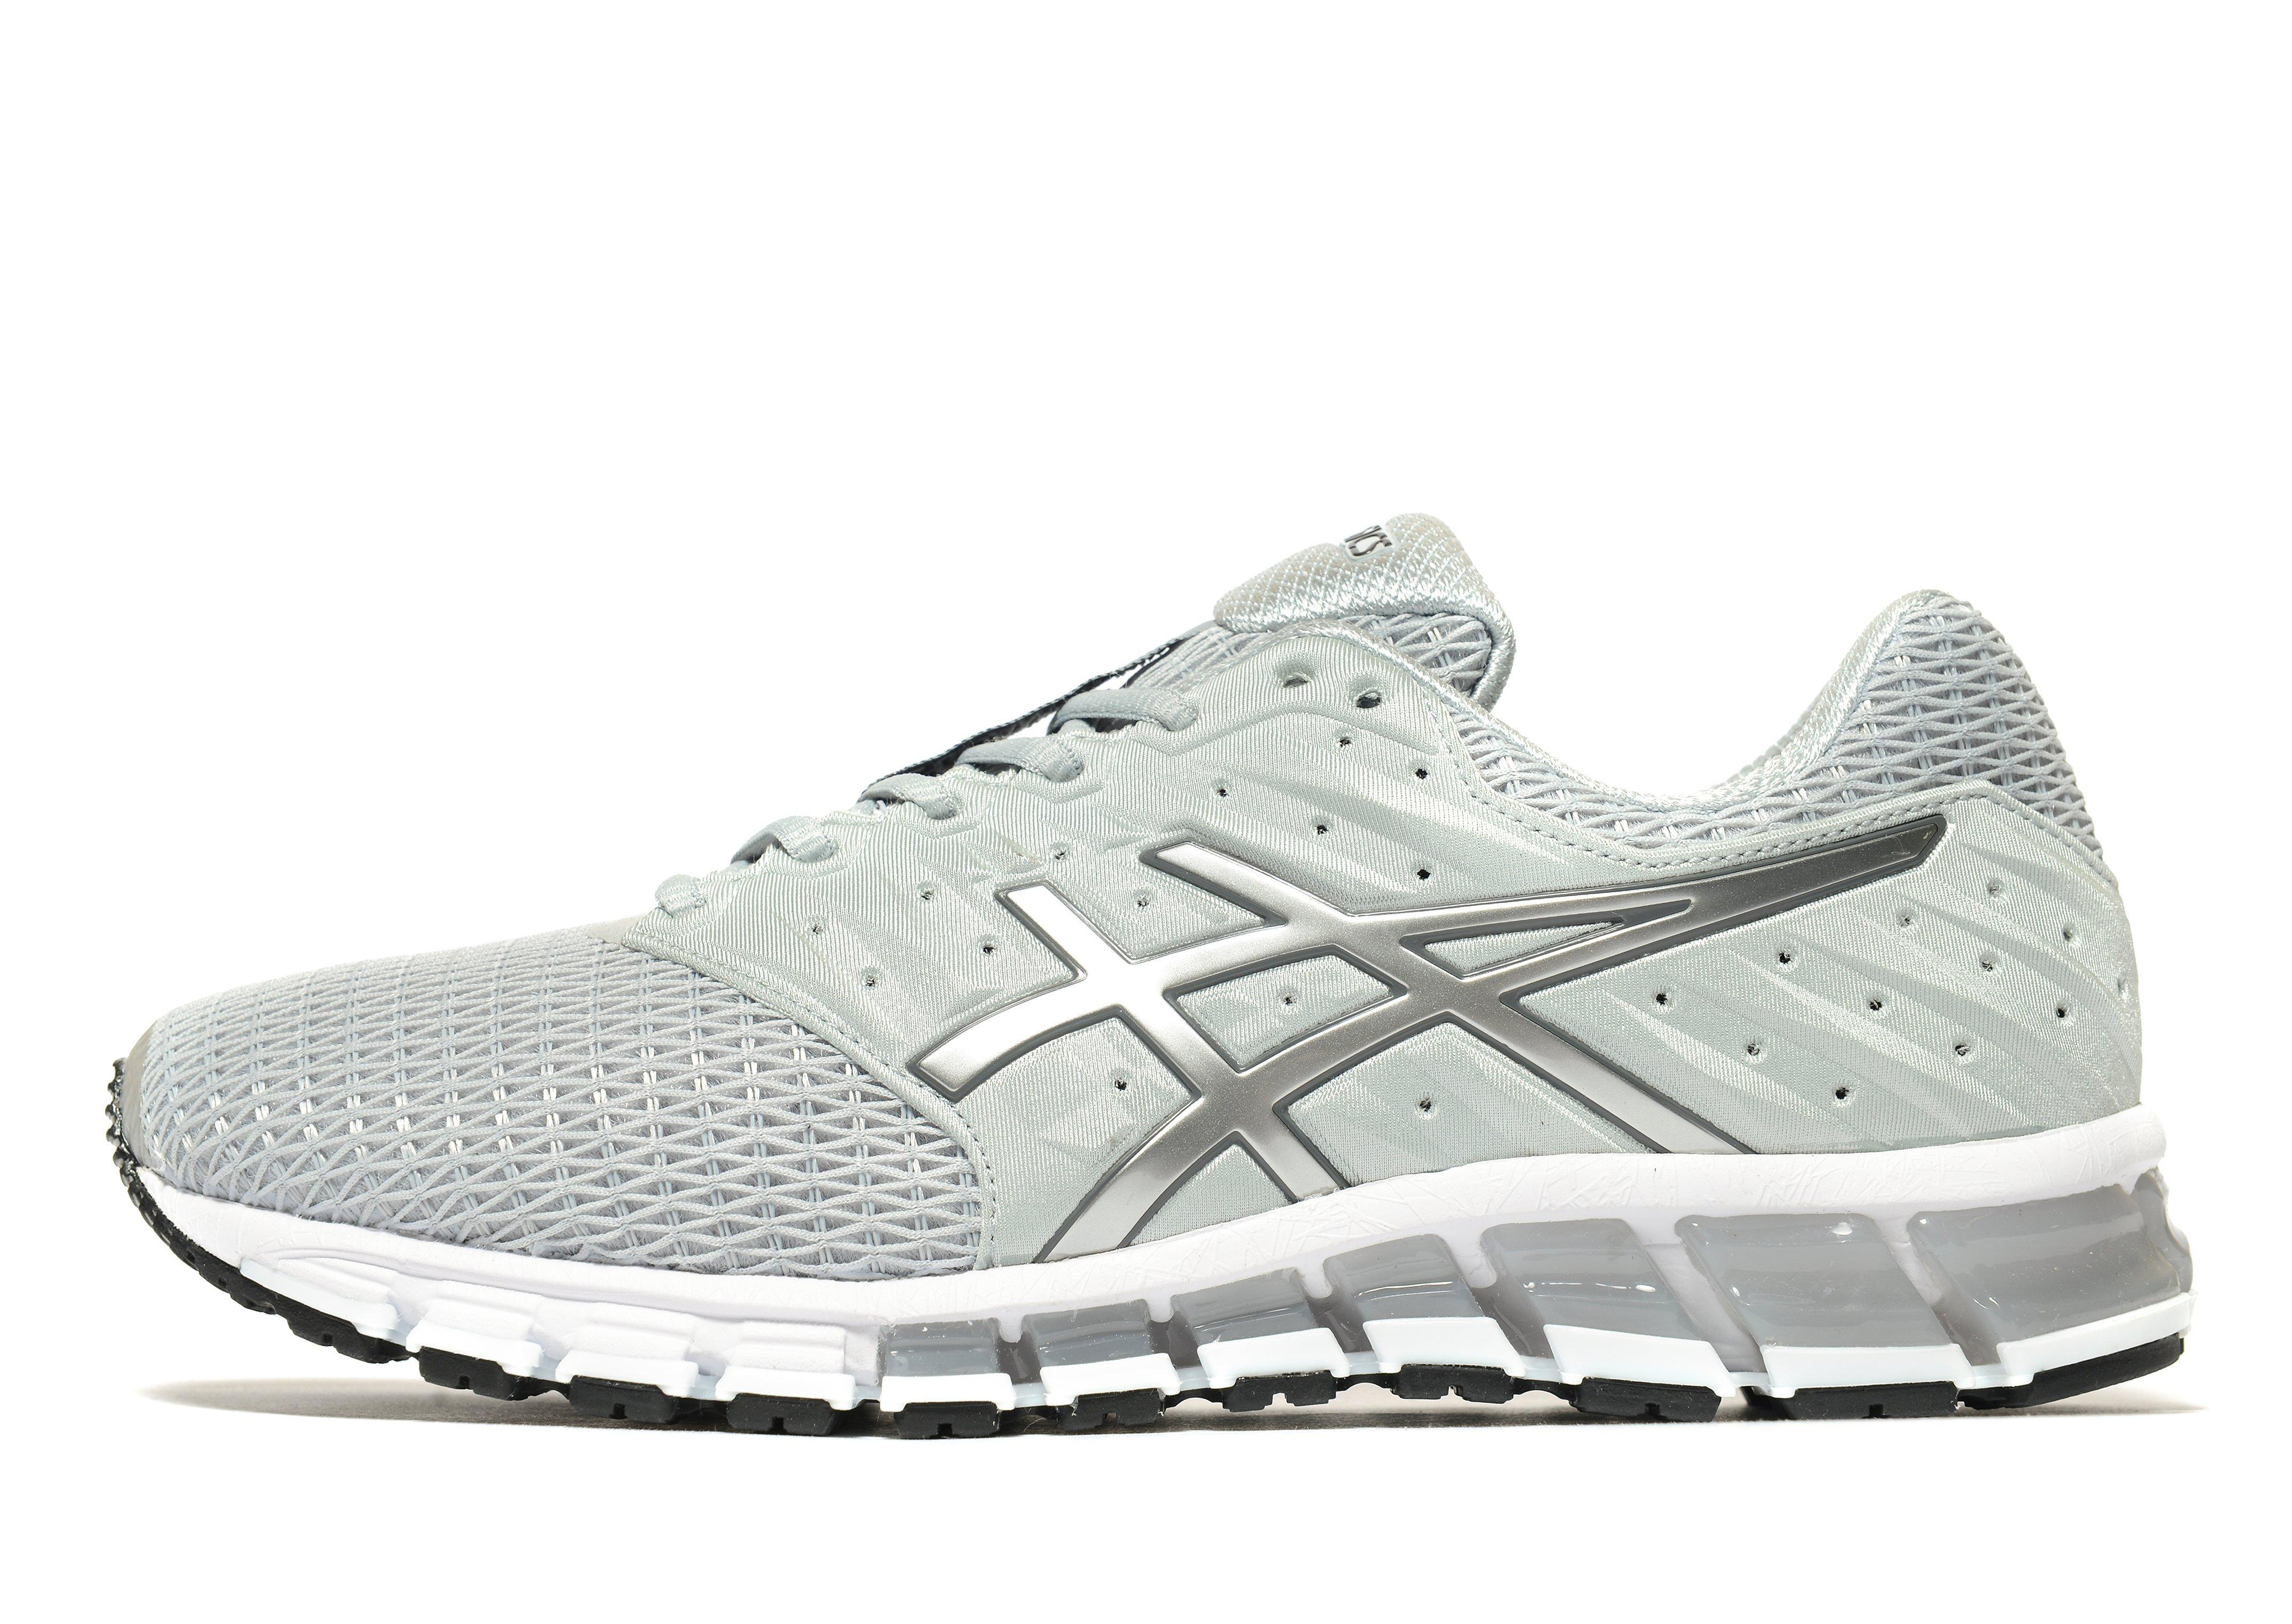 release date 15ff4 262ce Asics Gel Quantum 180 2 Running Shoes in Gray for Men - Lyst